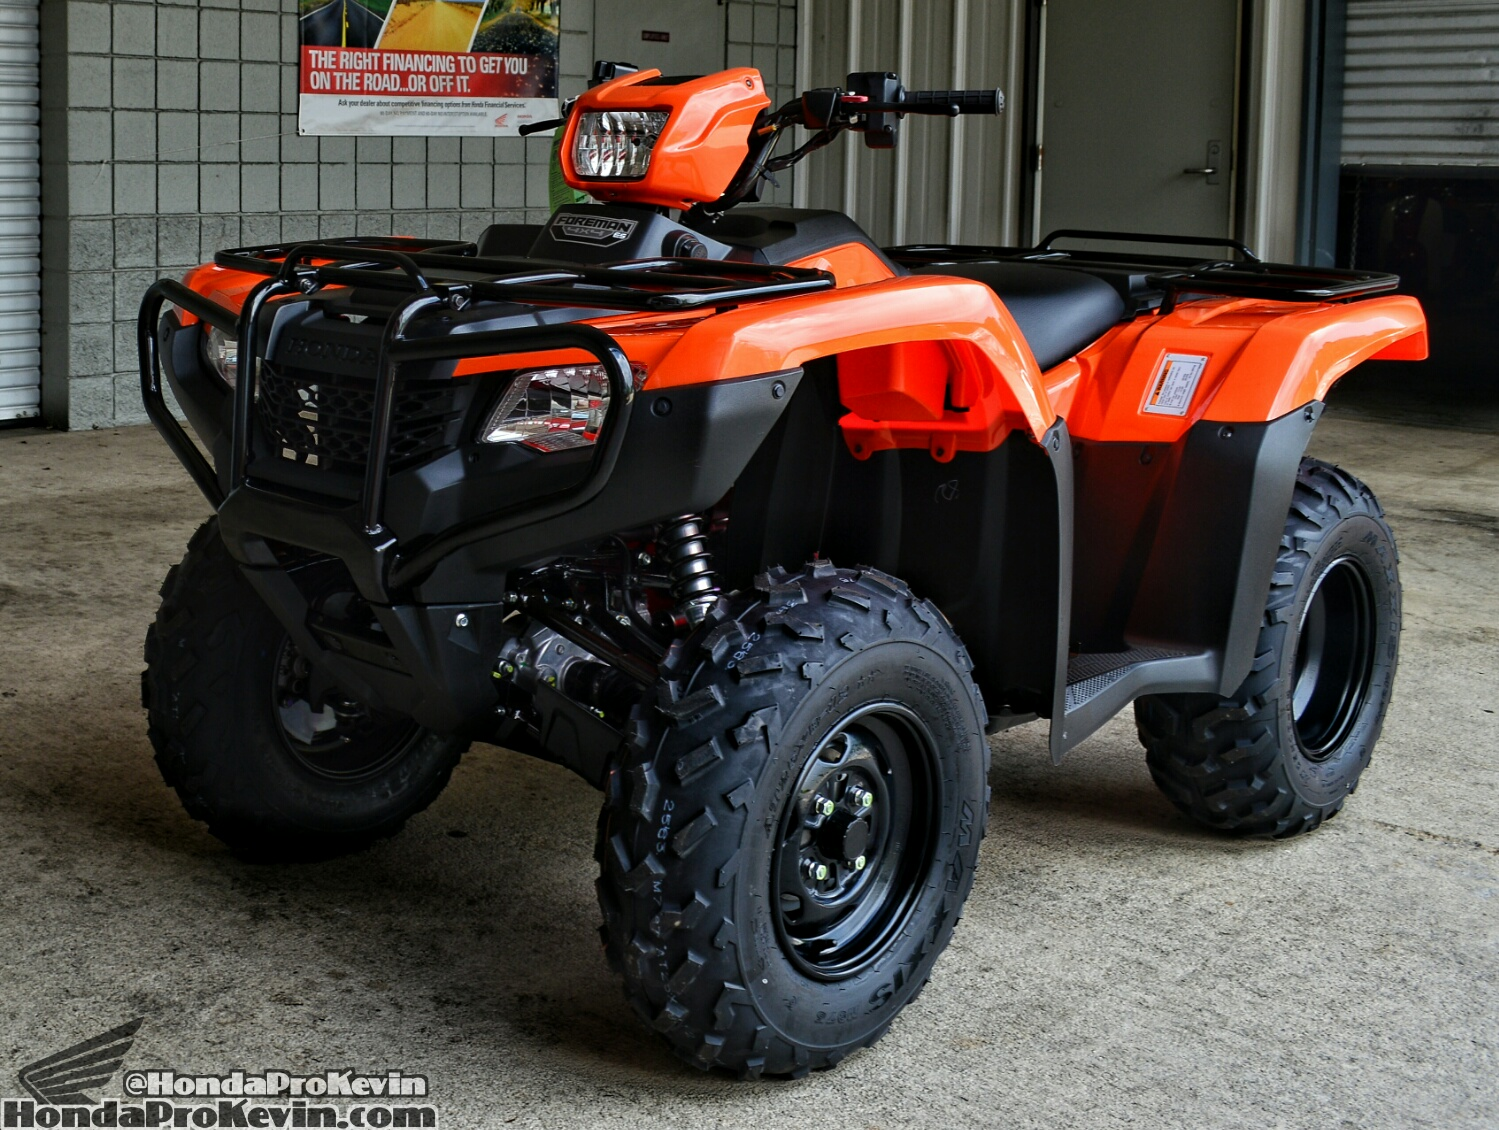 2016 Honda Foreman 500 ATV Review / Specs - TRX500 Horsepower & Torque Performance Numbers